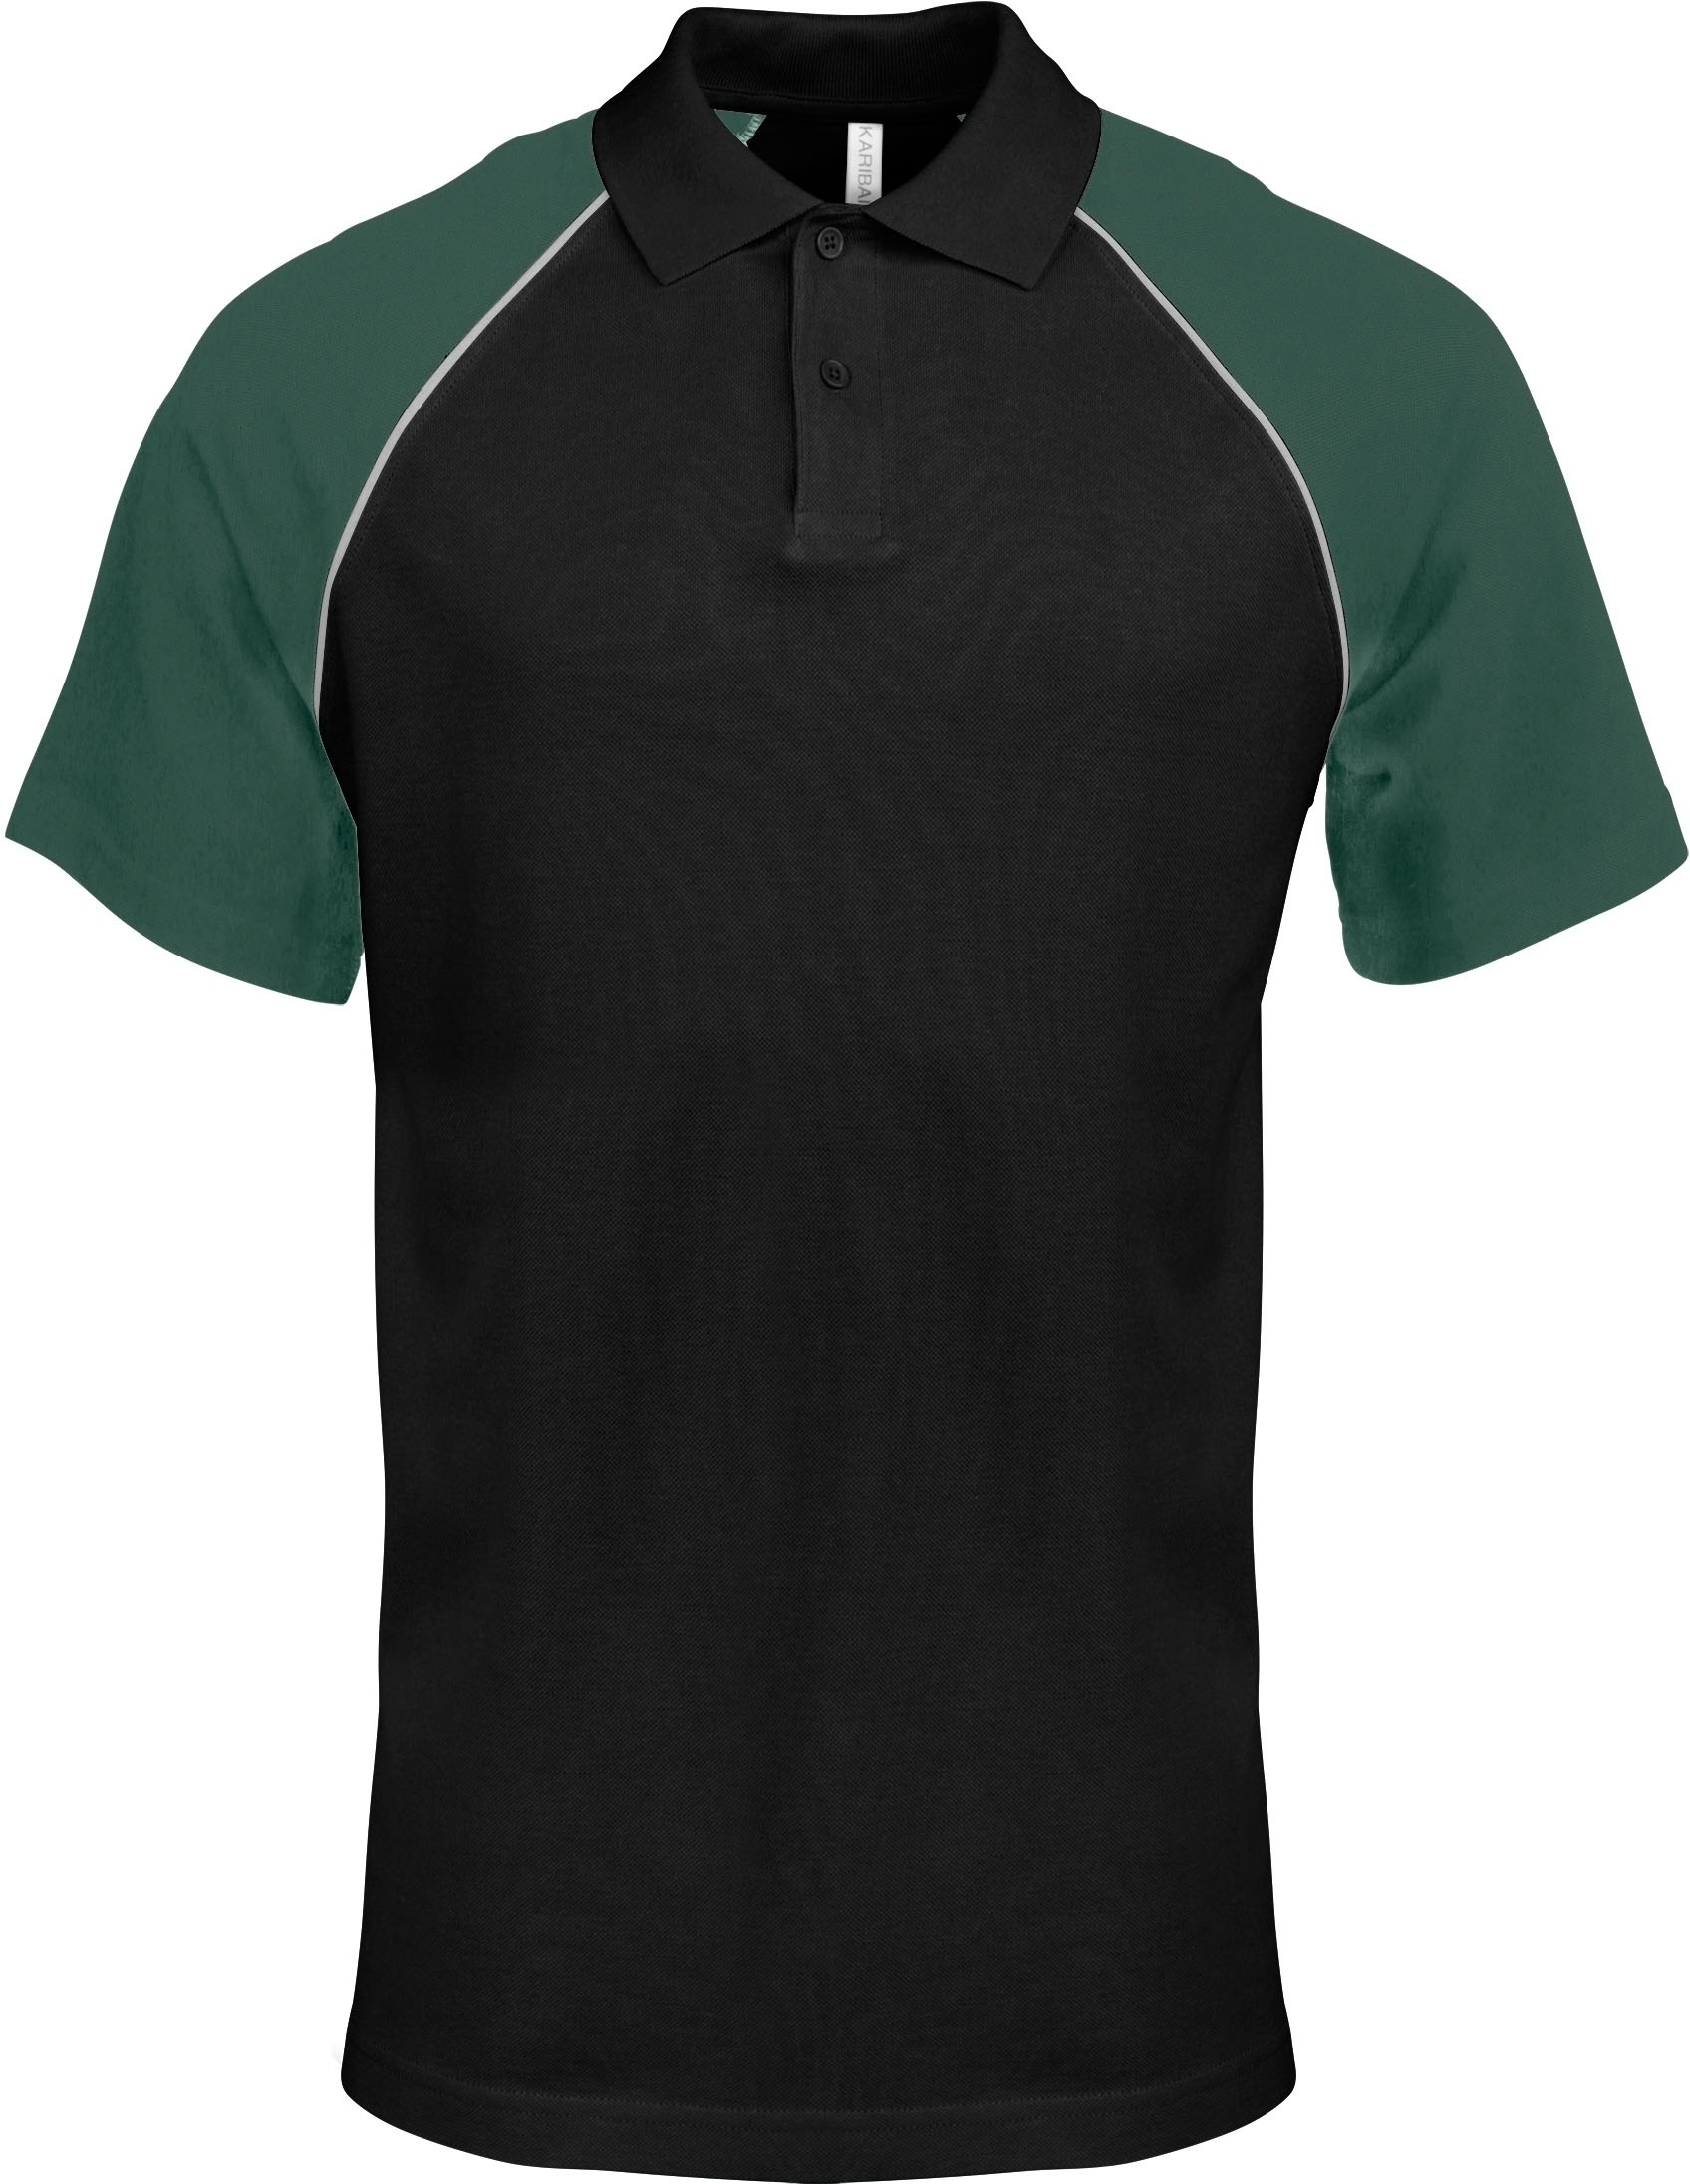 POLO BASE BALL MANCHES COURTES Black / Green Noir